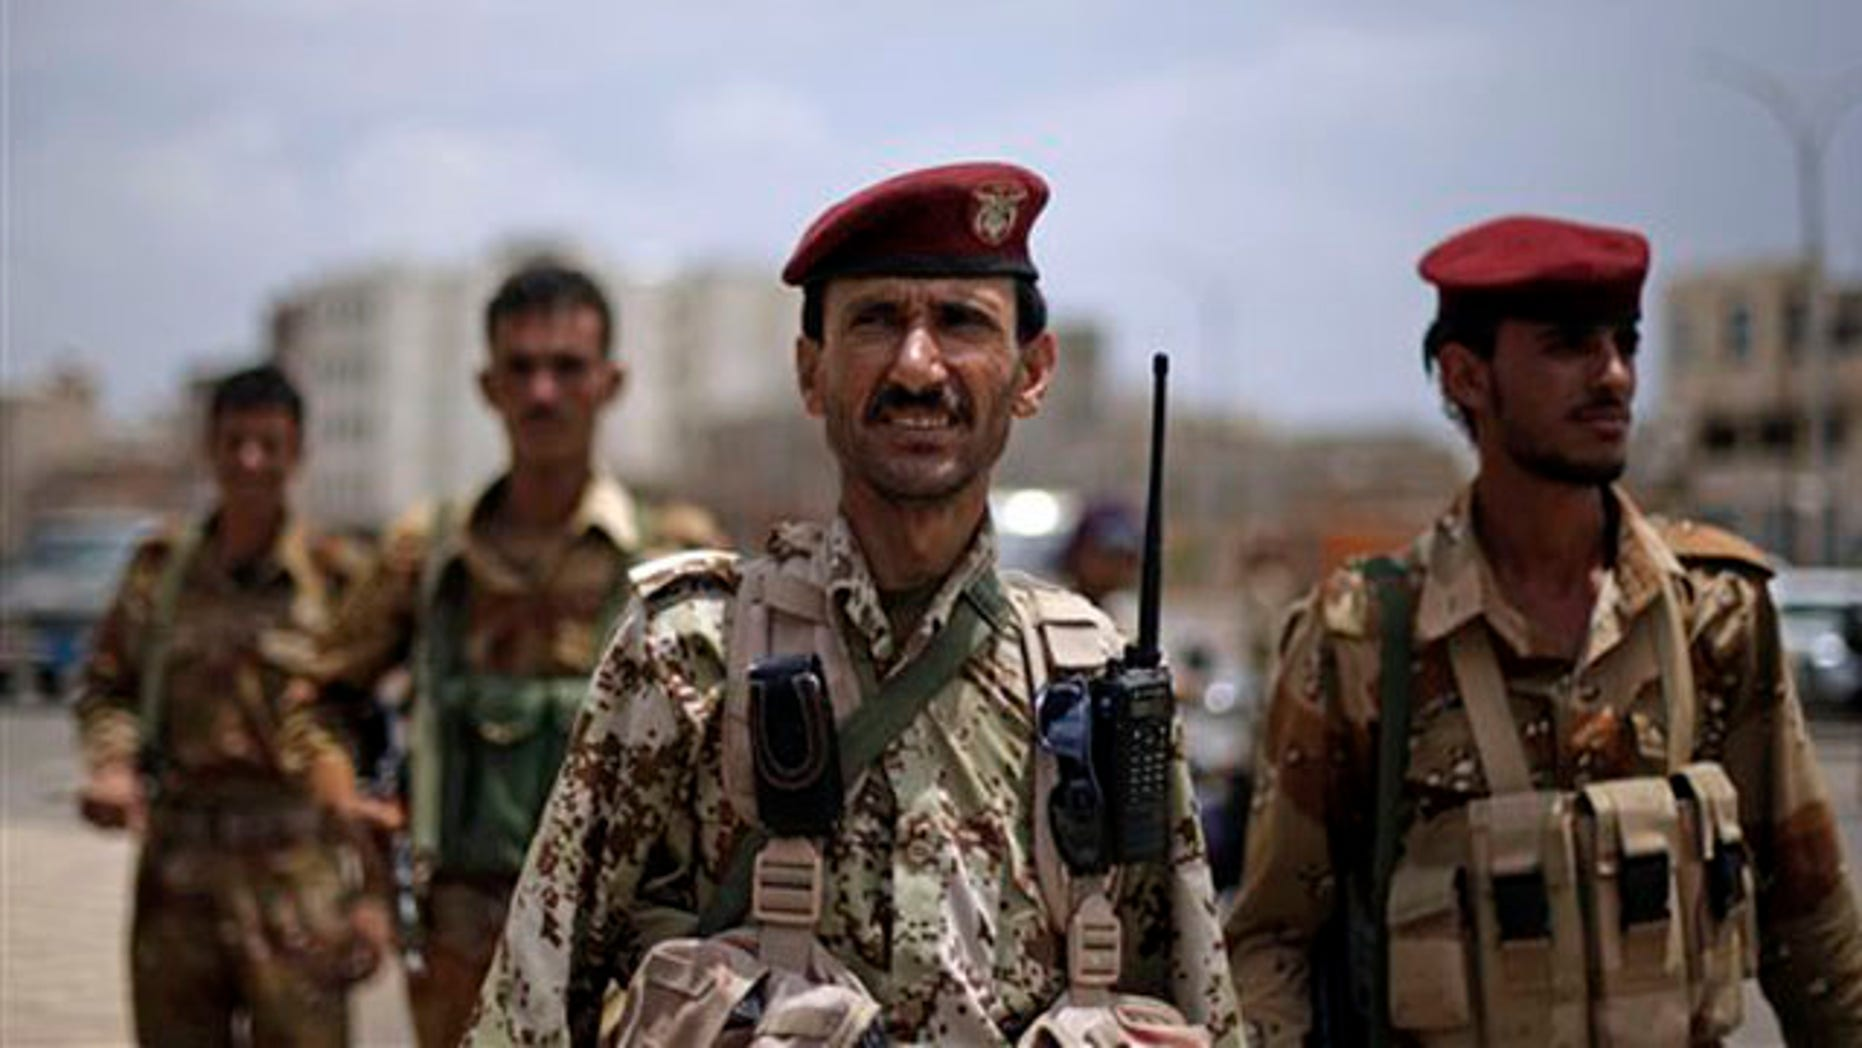 A Yemeni soldier who defected looks on as he stands guard with others at a checkpoint next to the site of a demonstration by anti-government protestors demanding the resignation of Ali Abdullah Saleh in Sanaa, Yemen, Thursday, Sept. 8, 2011.